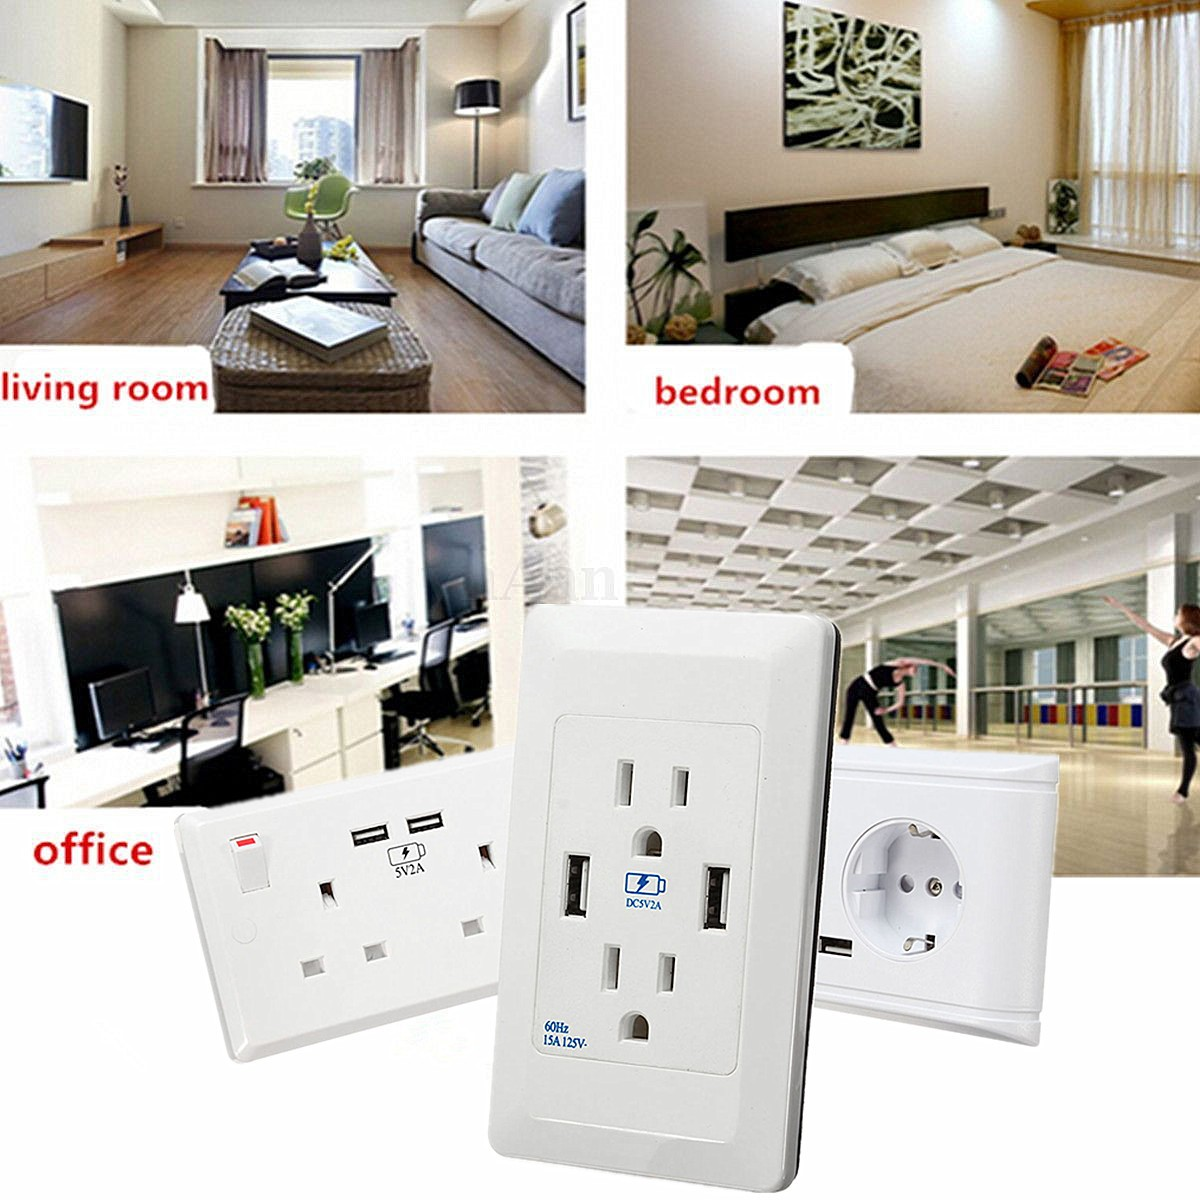 Double USB Socket White 13A 2Gang Electric Wall Plug Sockets With 2USB Outlet